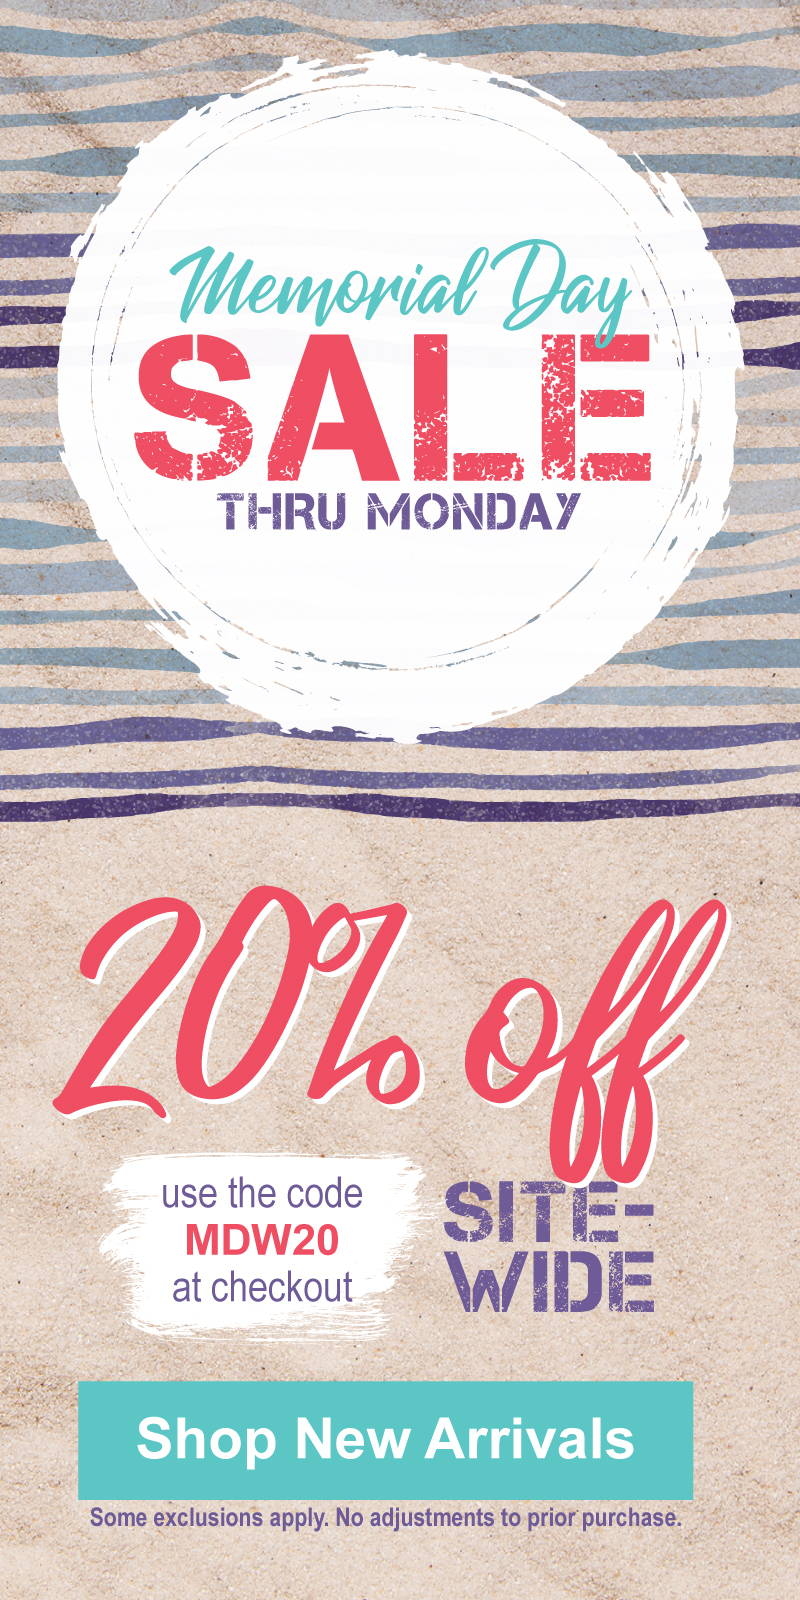 Memorial Day Sale is ON!